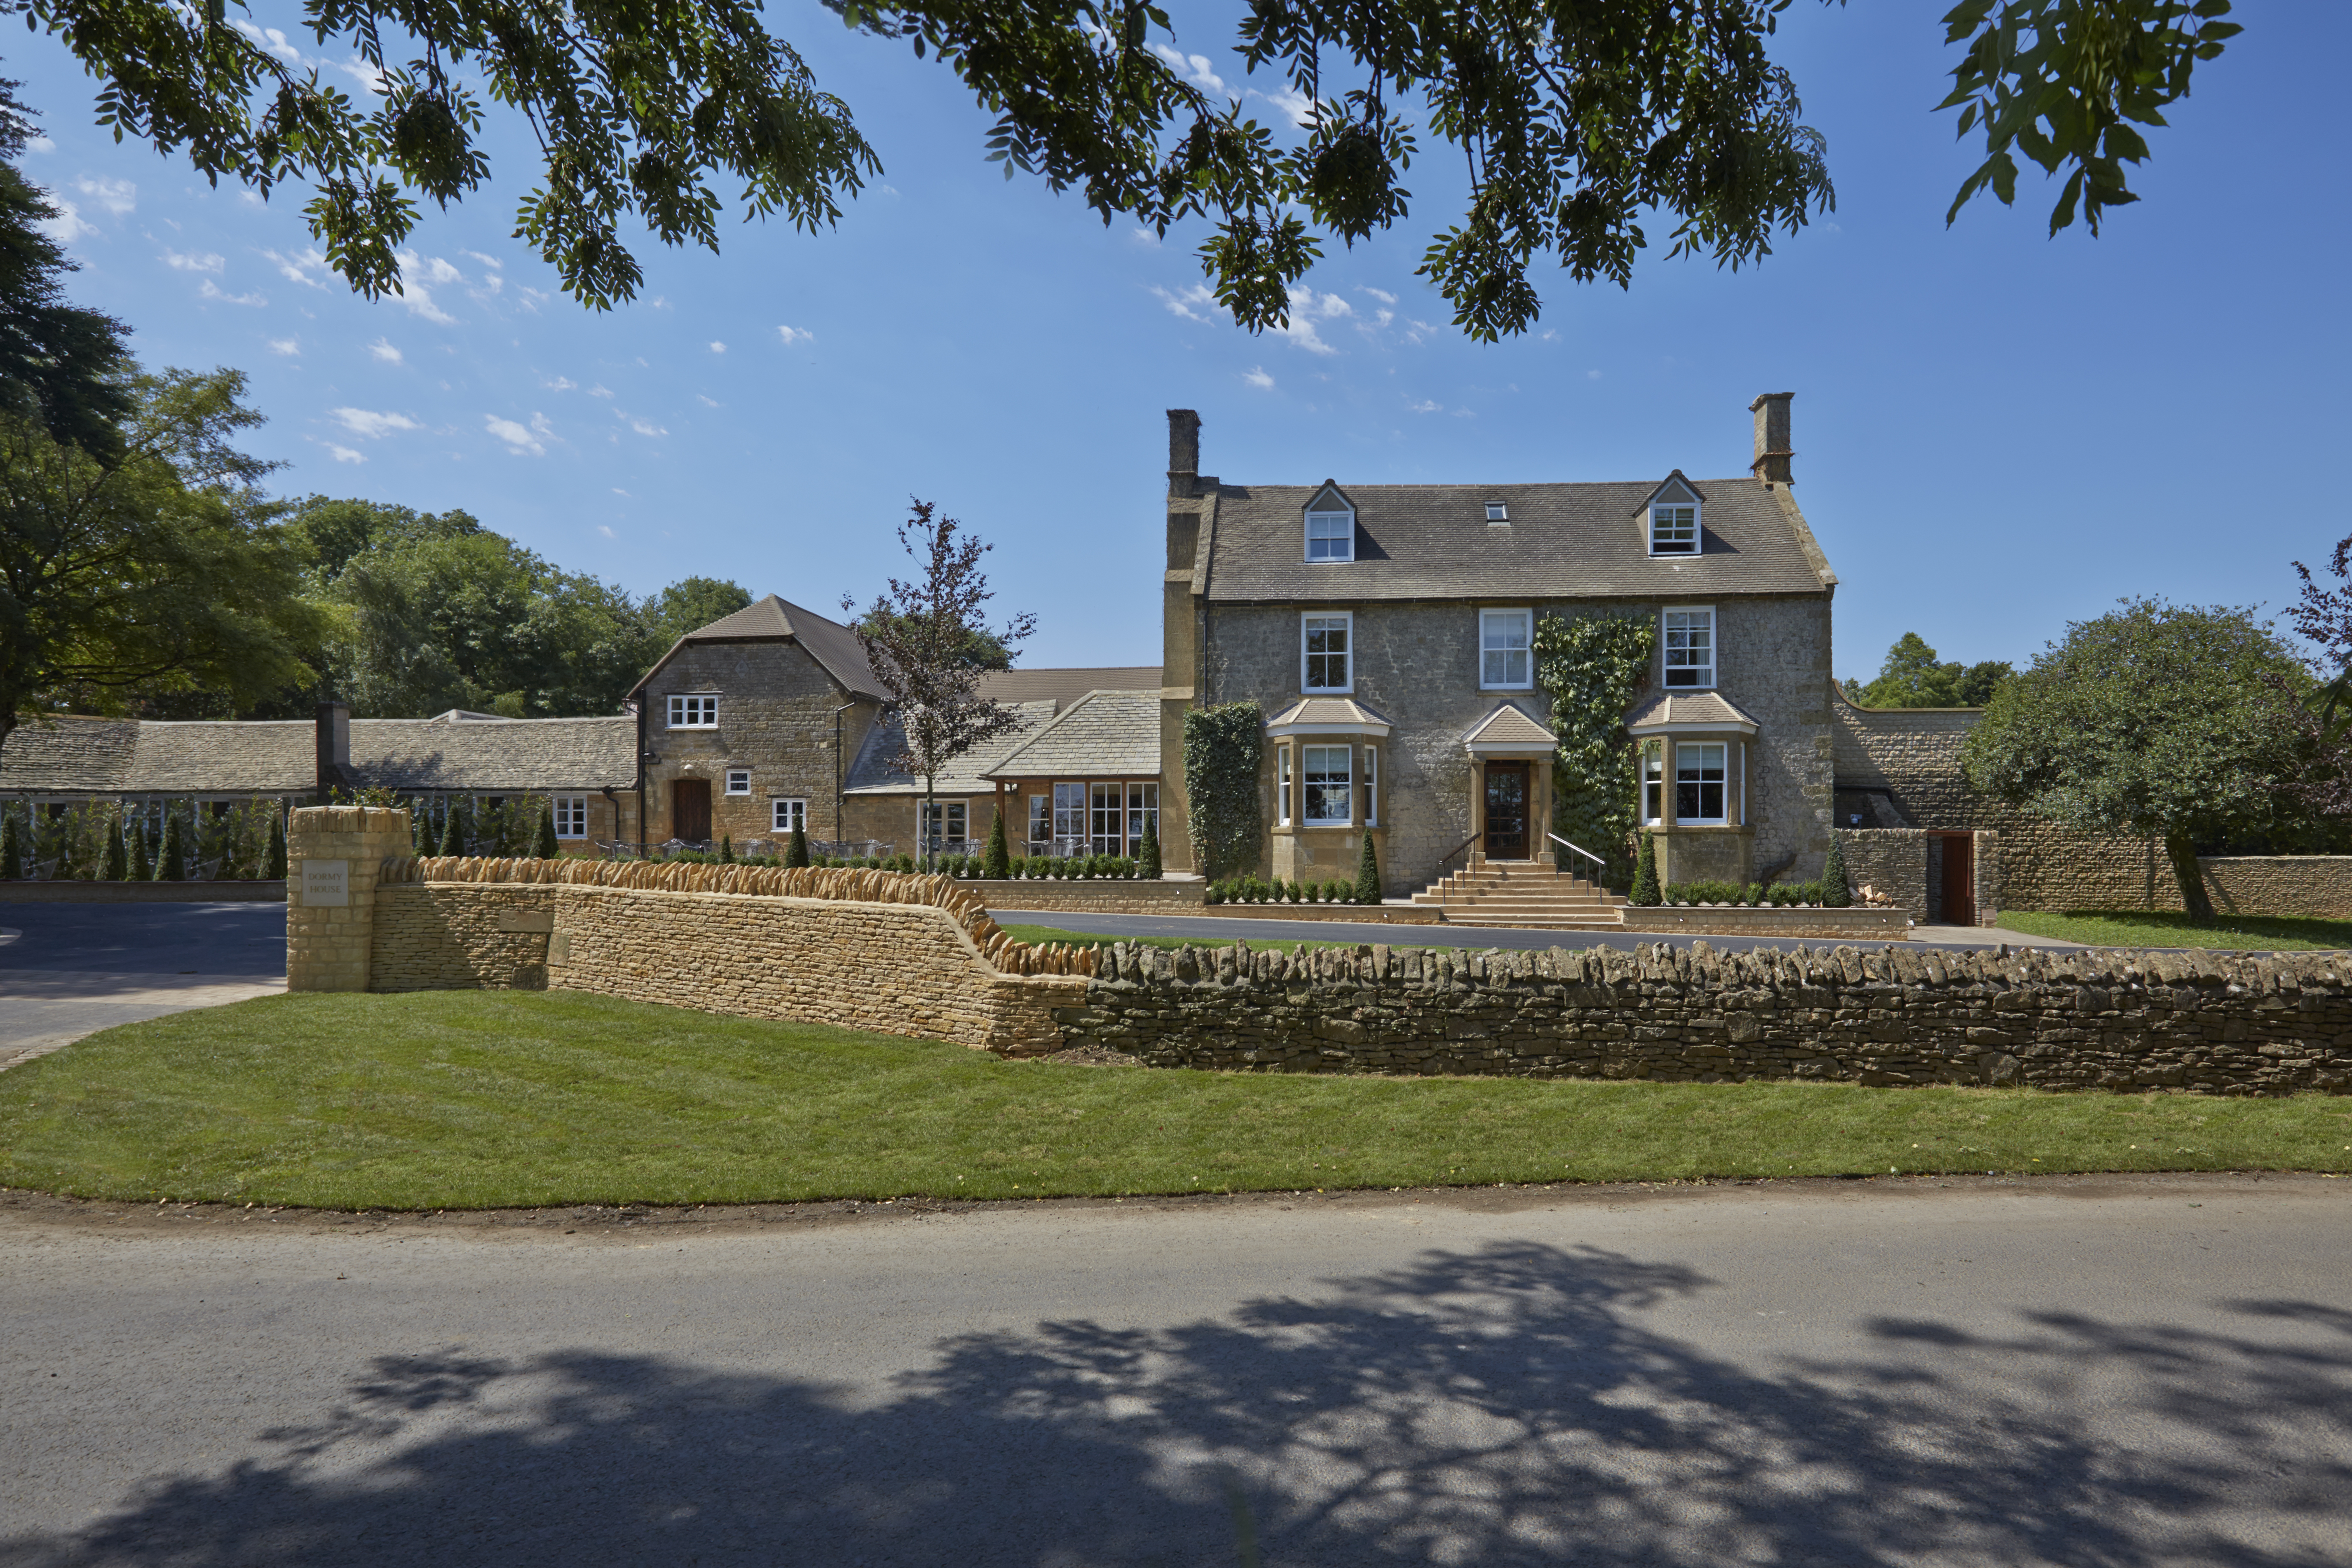 Dormy House - one of 10 Romantic places to stay in the Cotswolds